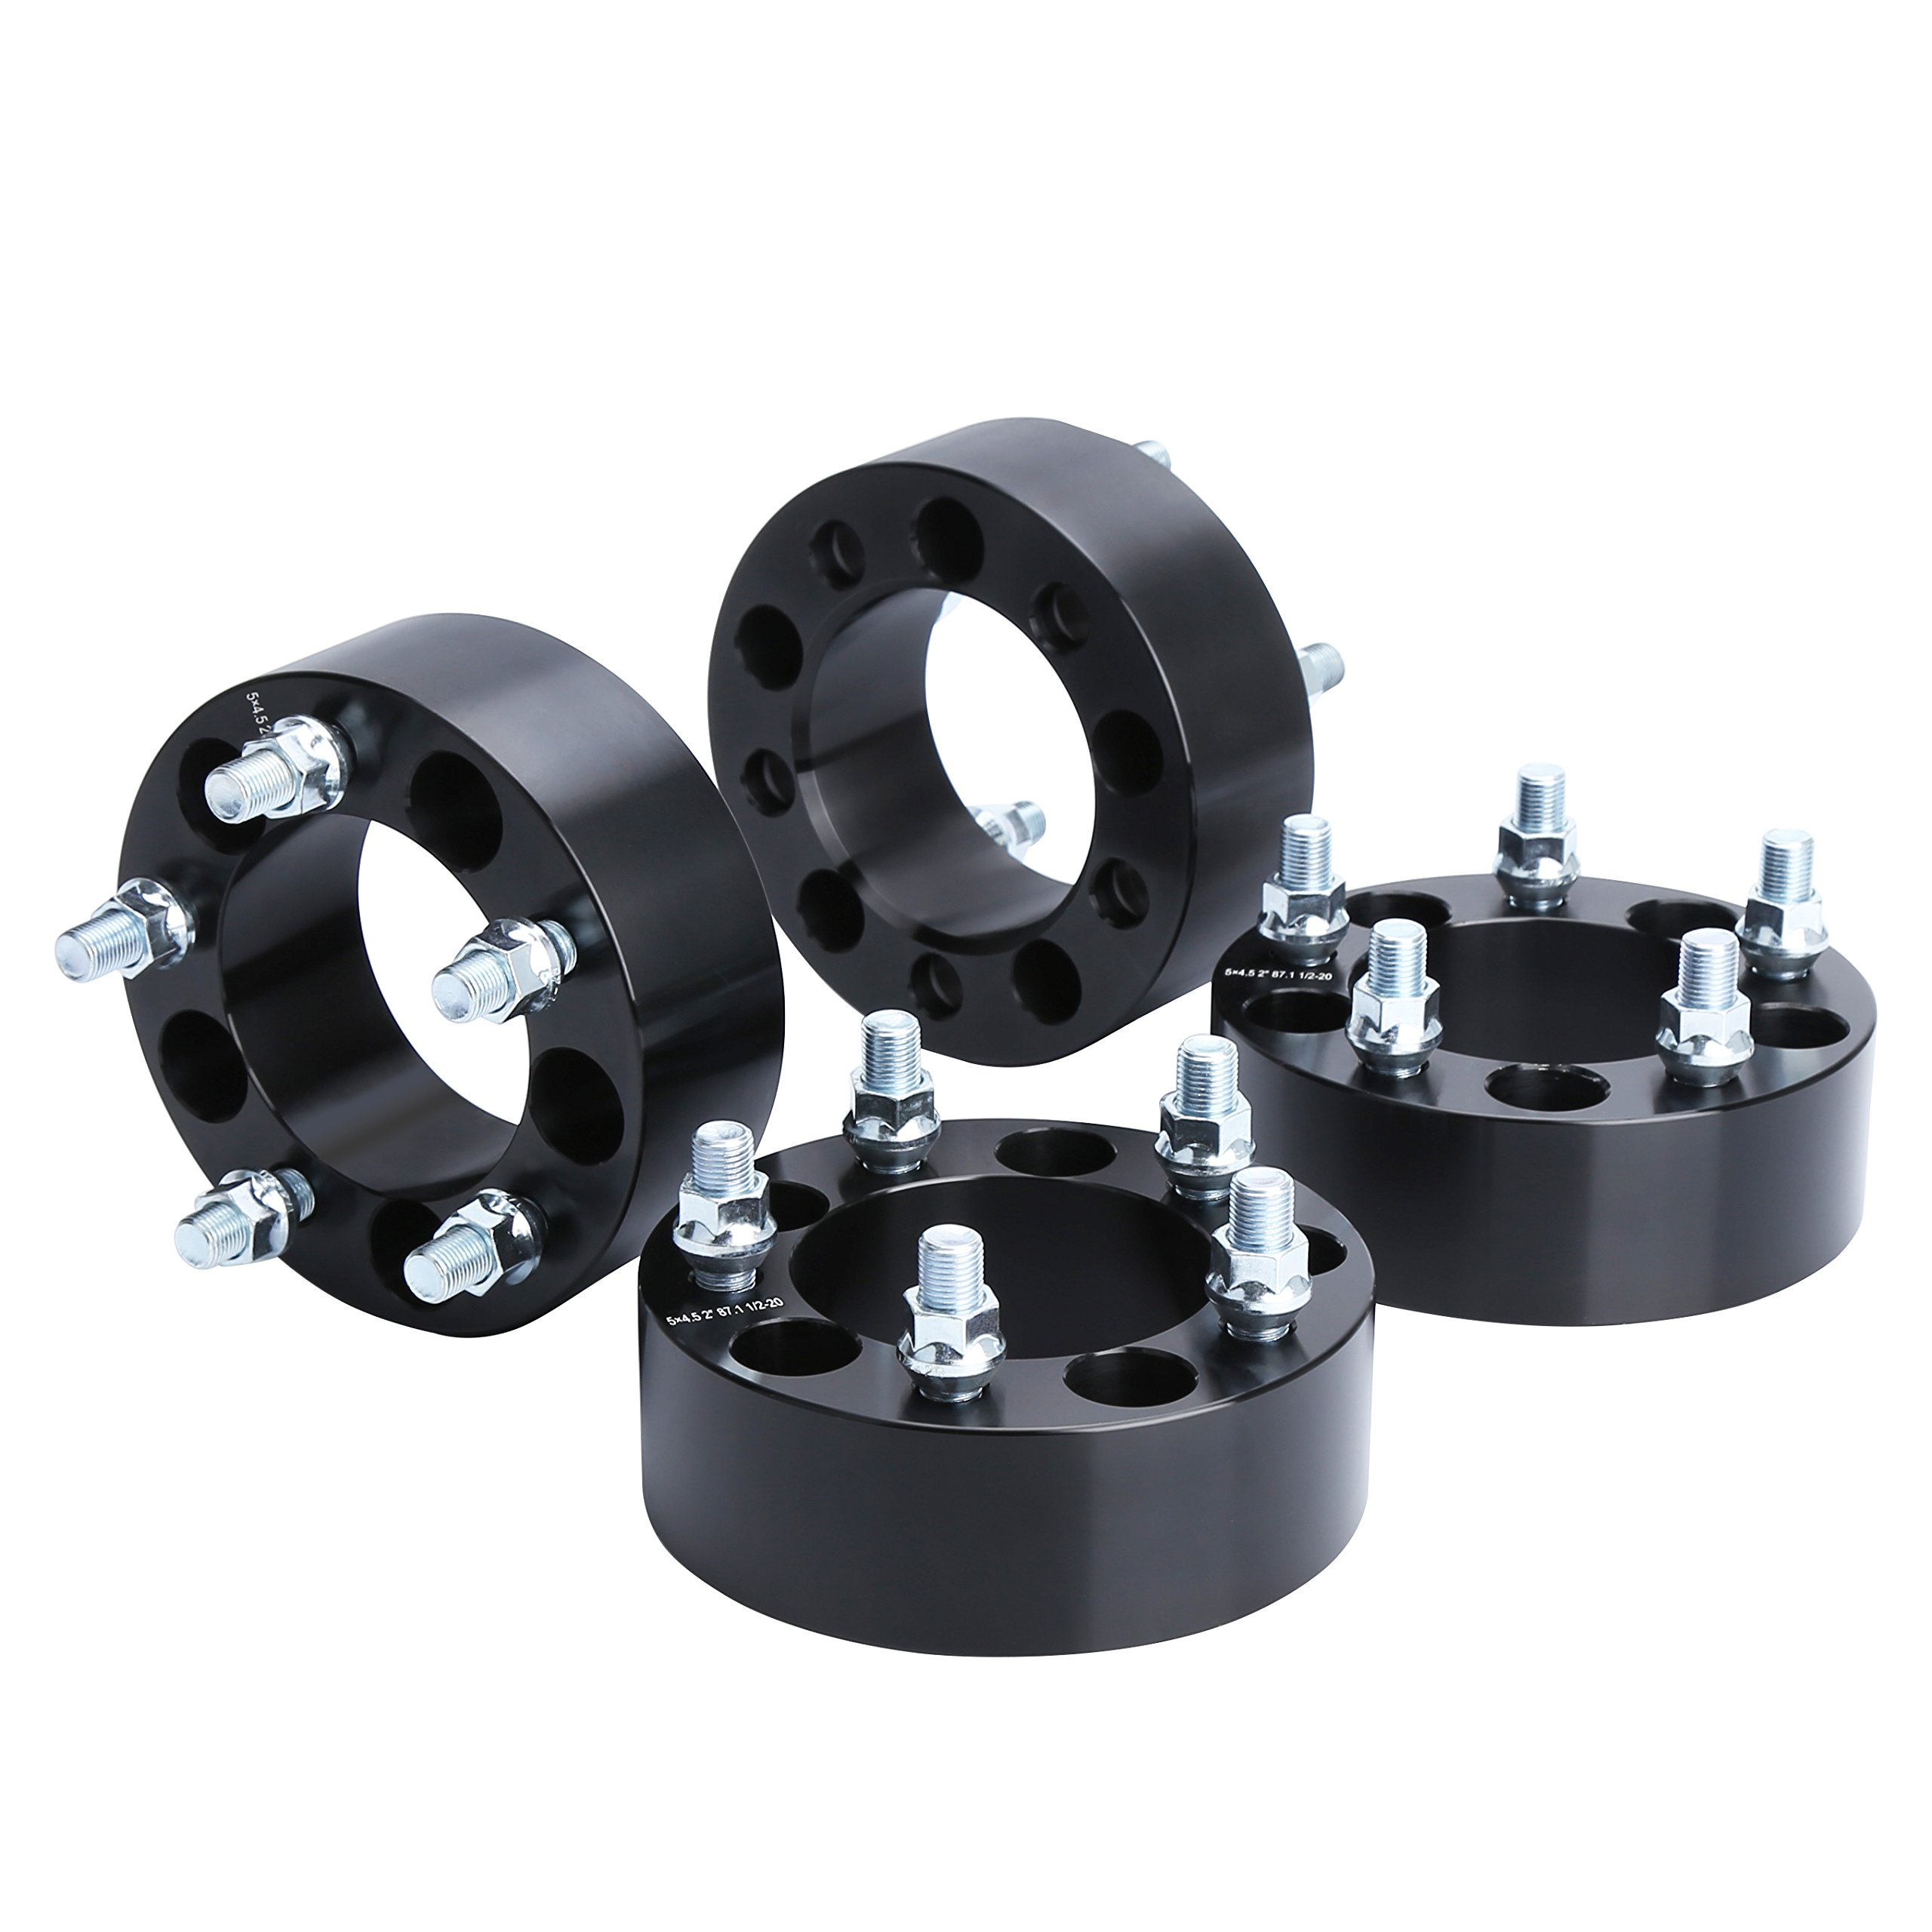 Wheel Spacers for Jeep TJ,YJ, KSP 4Pcs 2'' 5x4.5 to 5x4.5 (5x114.3) Thread Pitch 1/2-20 Hub Bore 82.5 mm 5 Lug 50mm Wheel Adapters for Cherokee Comanche Wrangler Grand Liberty, 2 Years Warranty Black